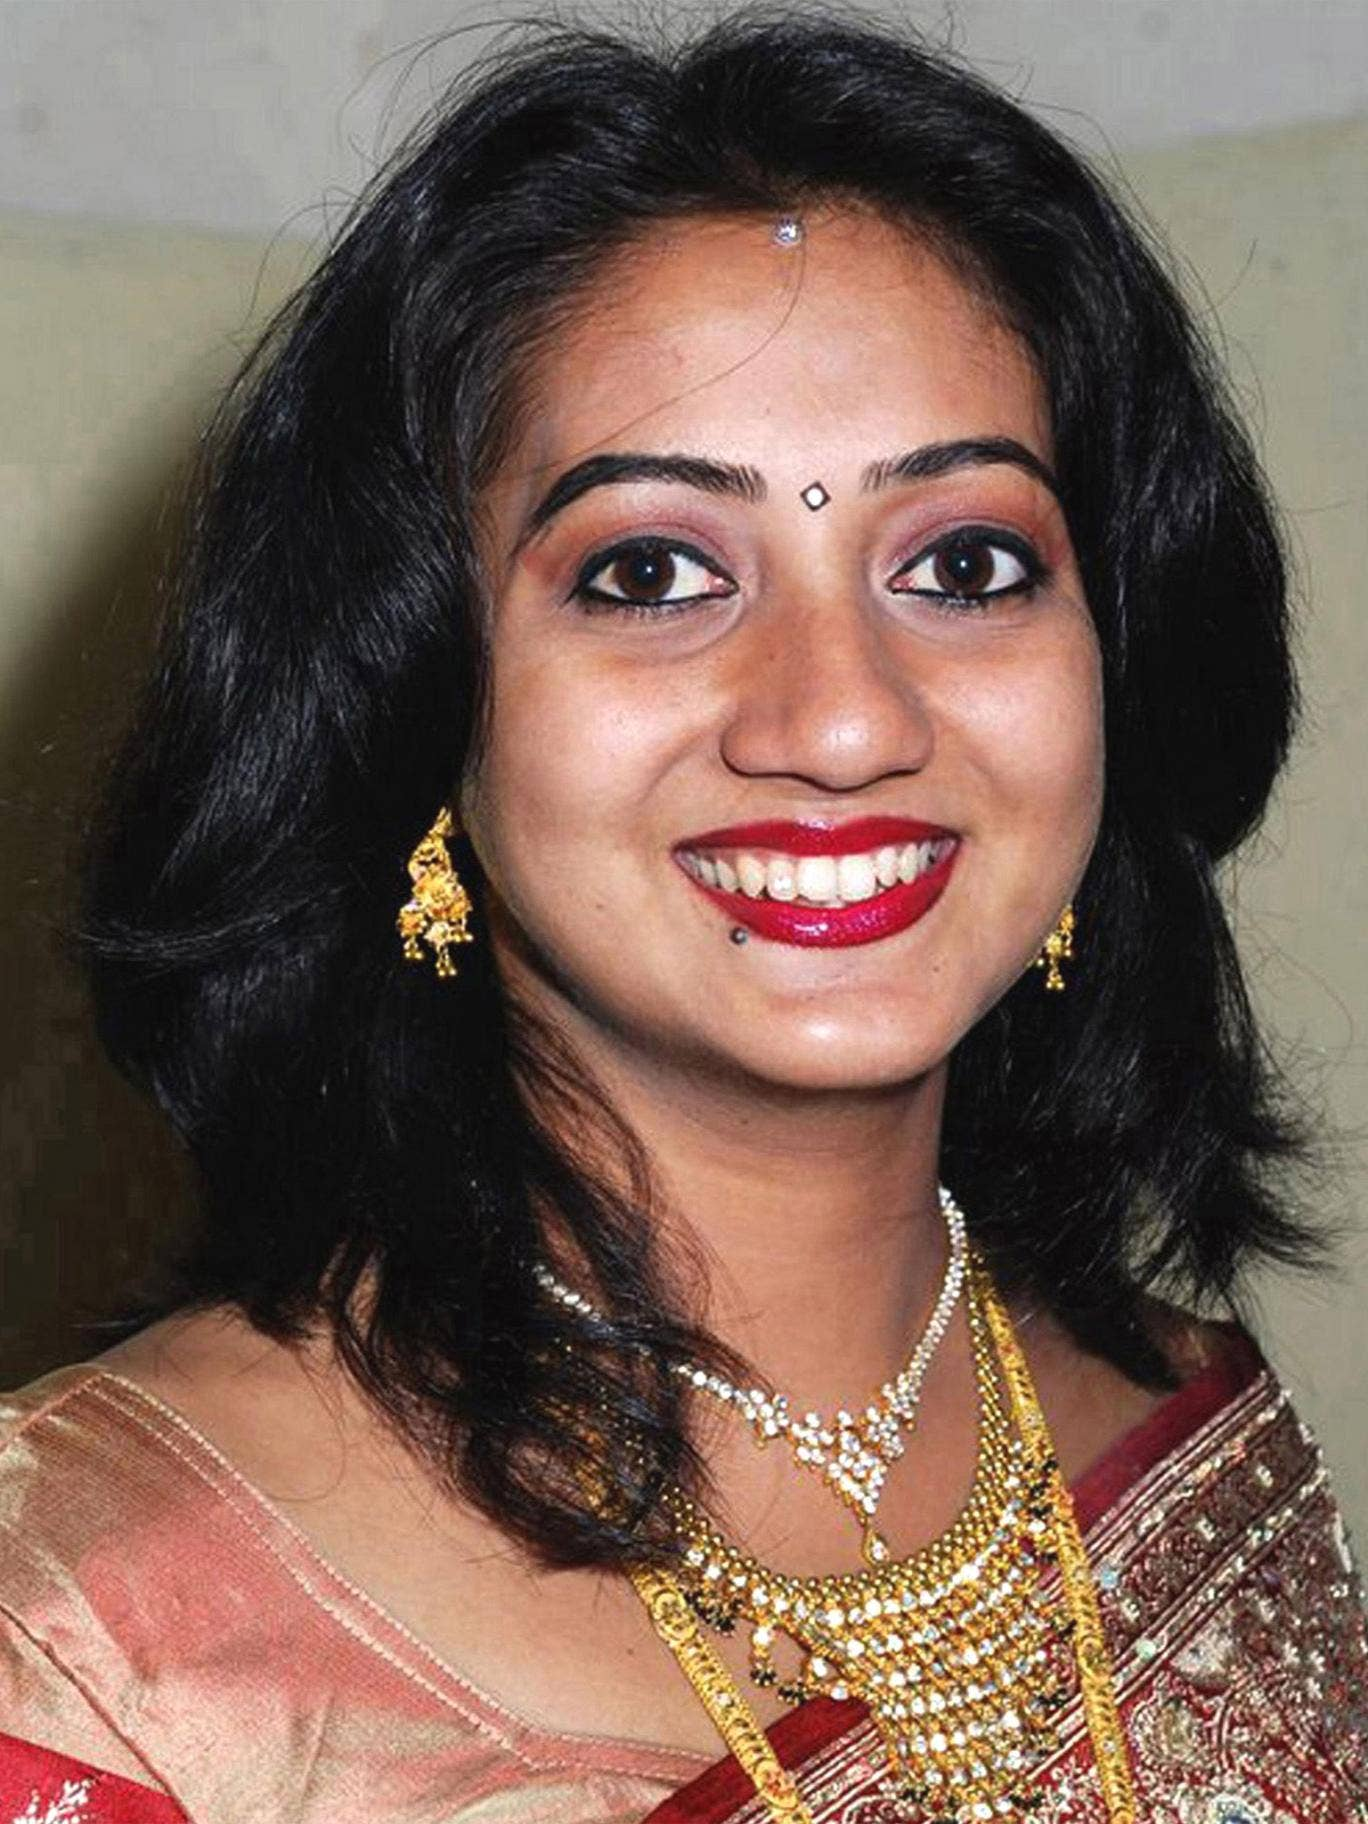 Savita Halappanavar died from septicaemia and a rare strain of E.coli